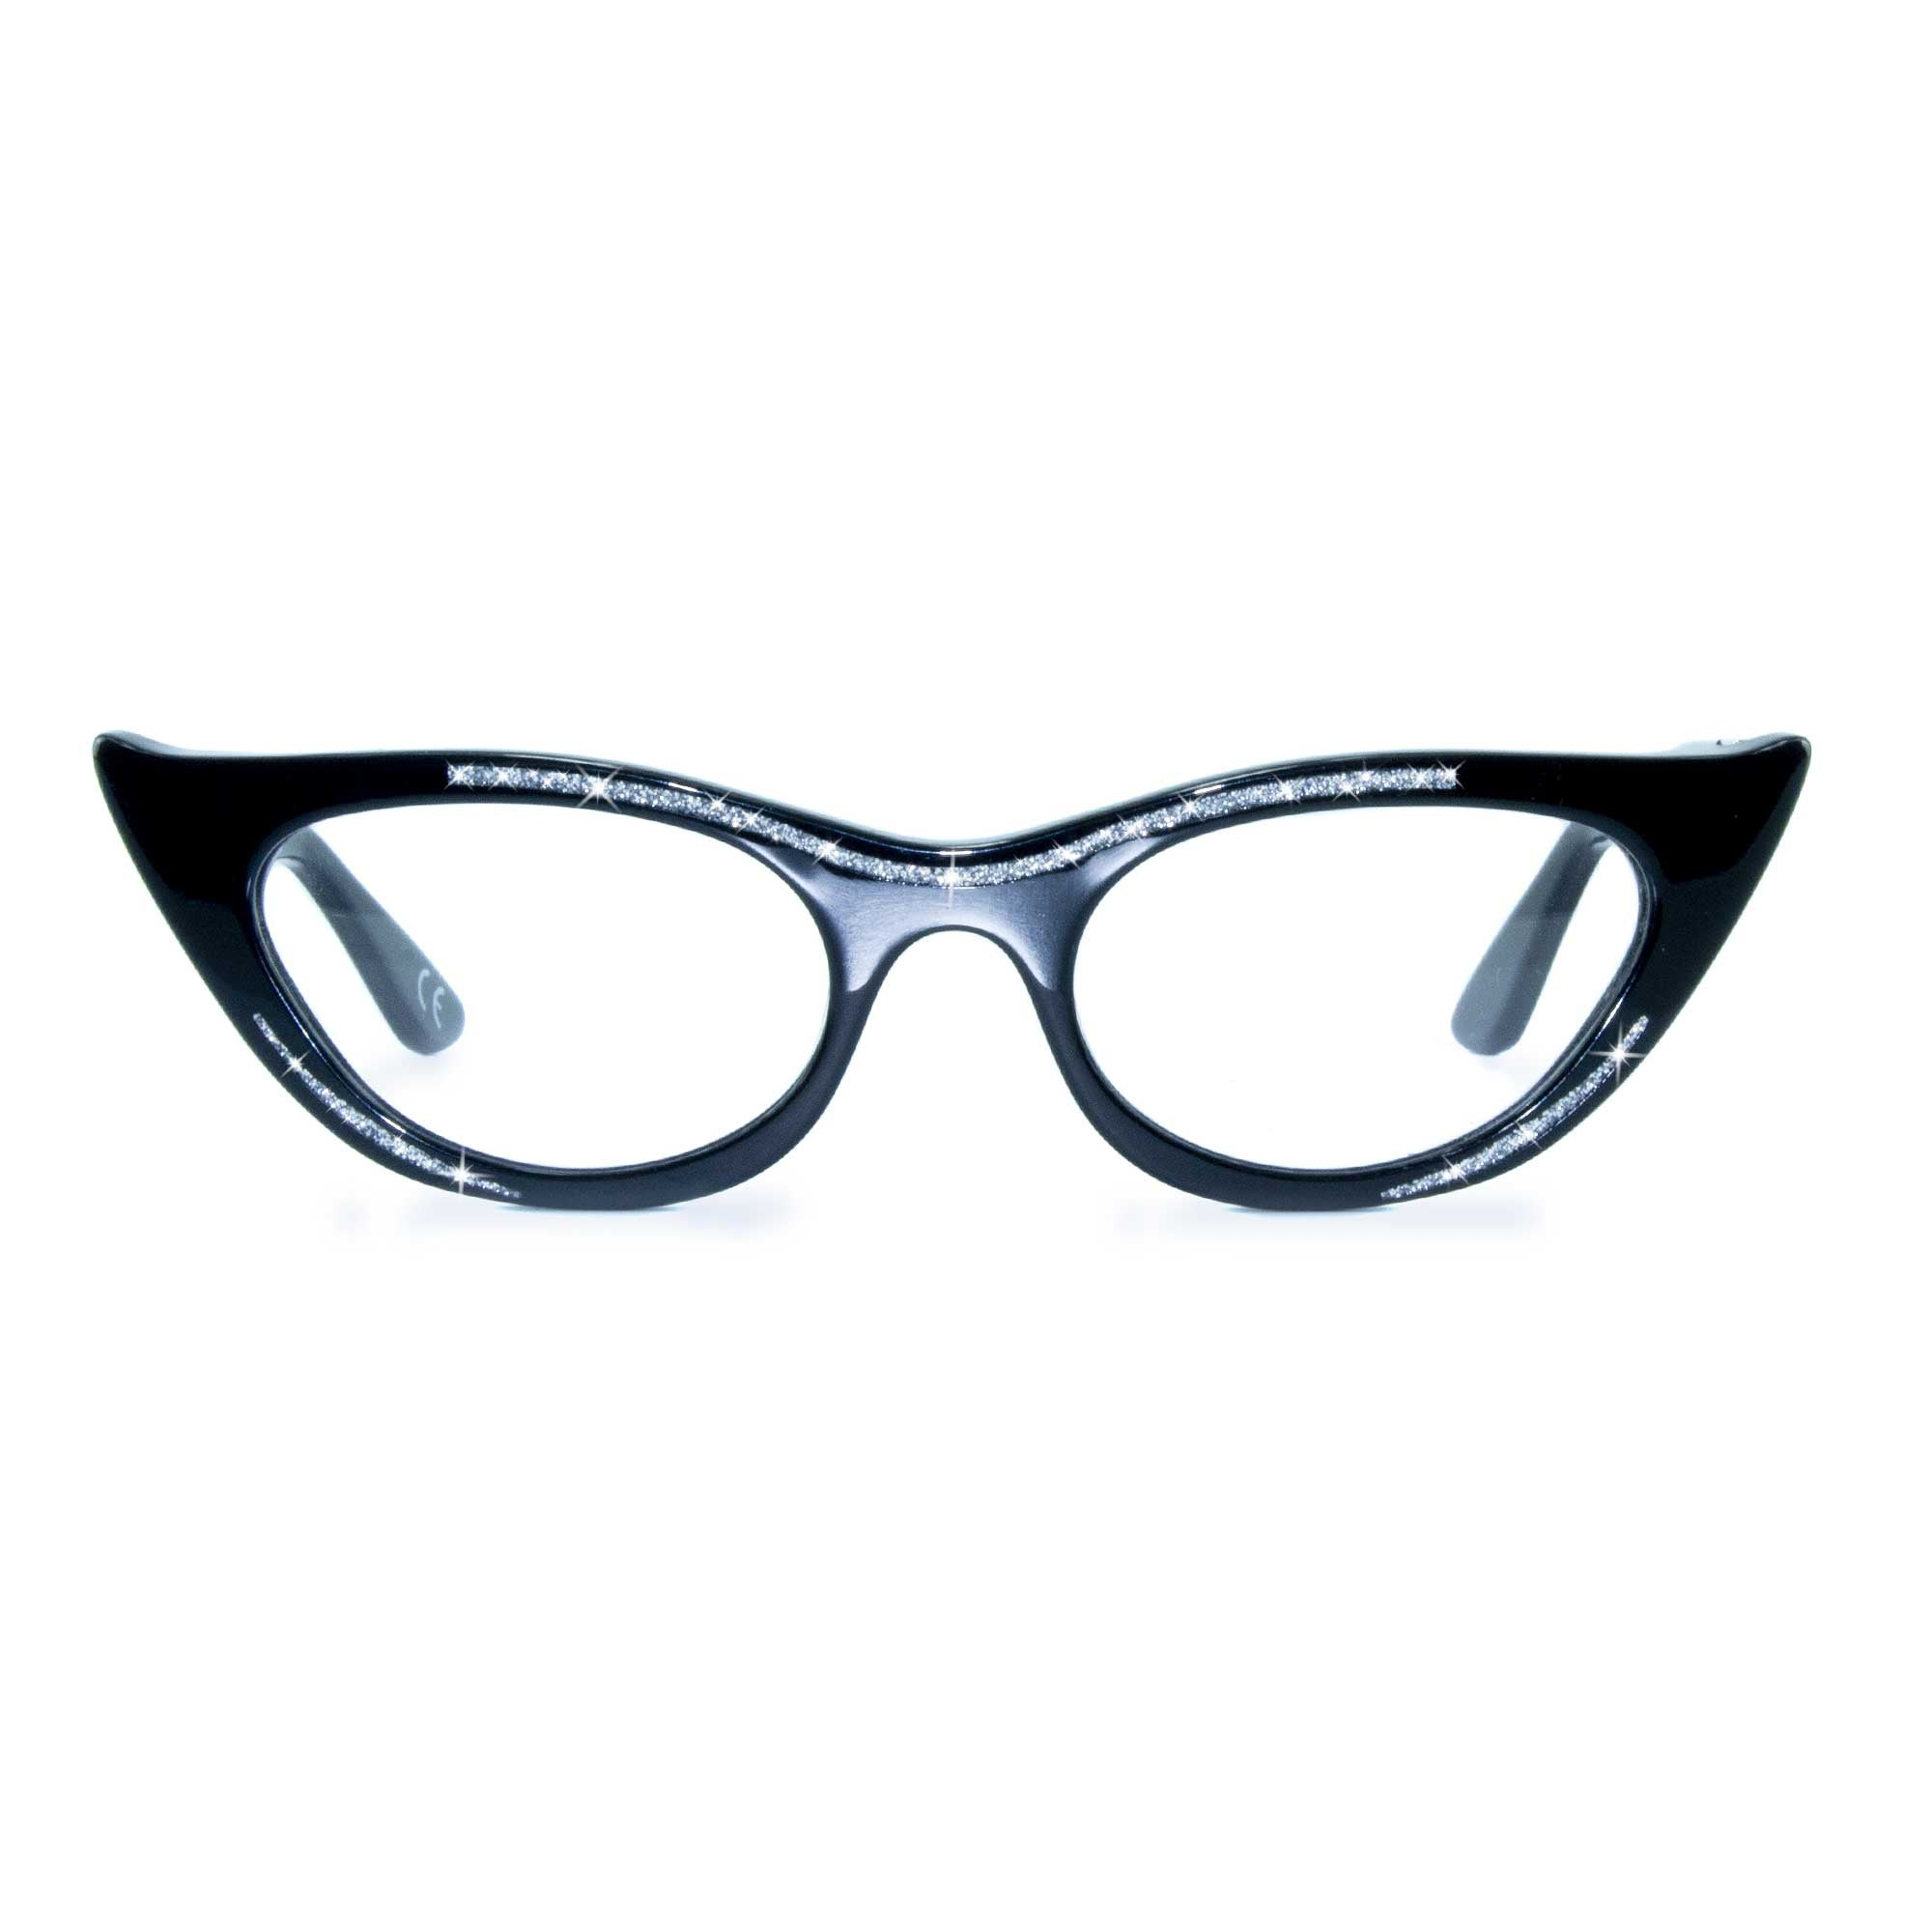 black winged cat eye glasses